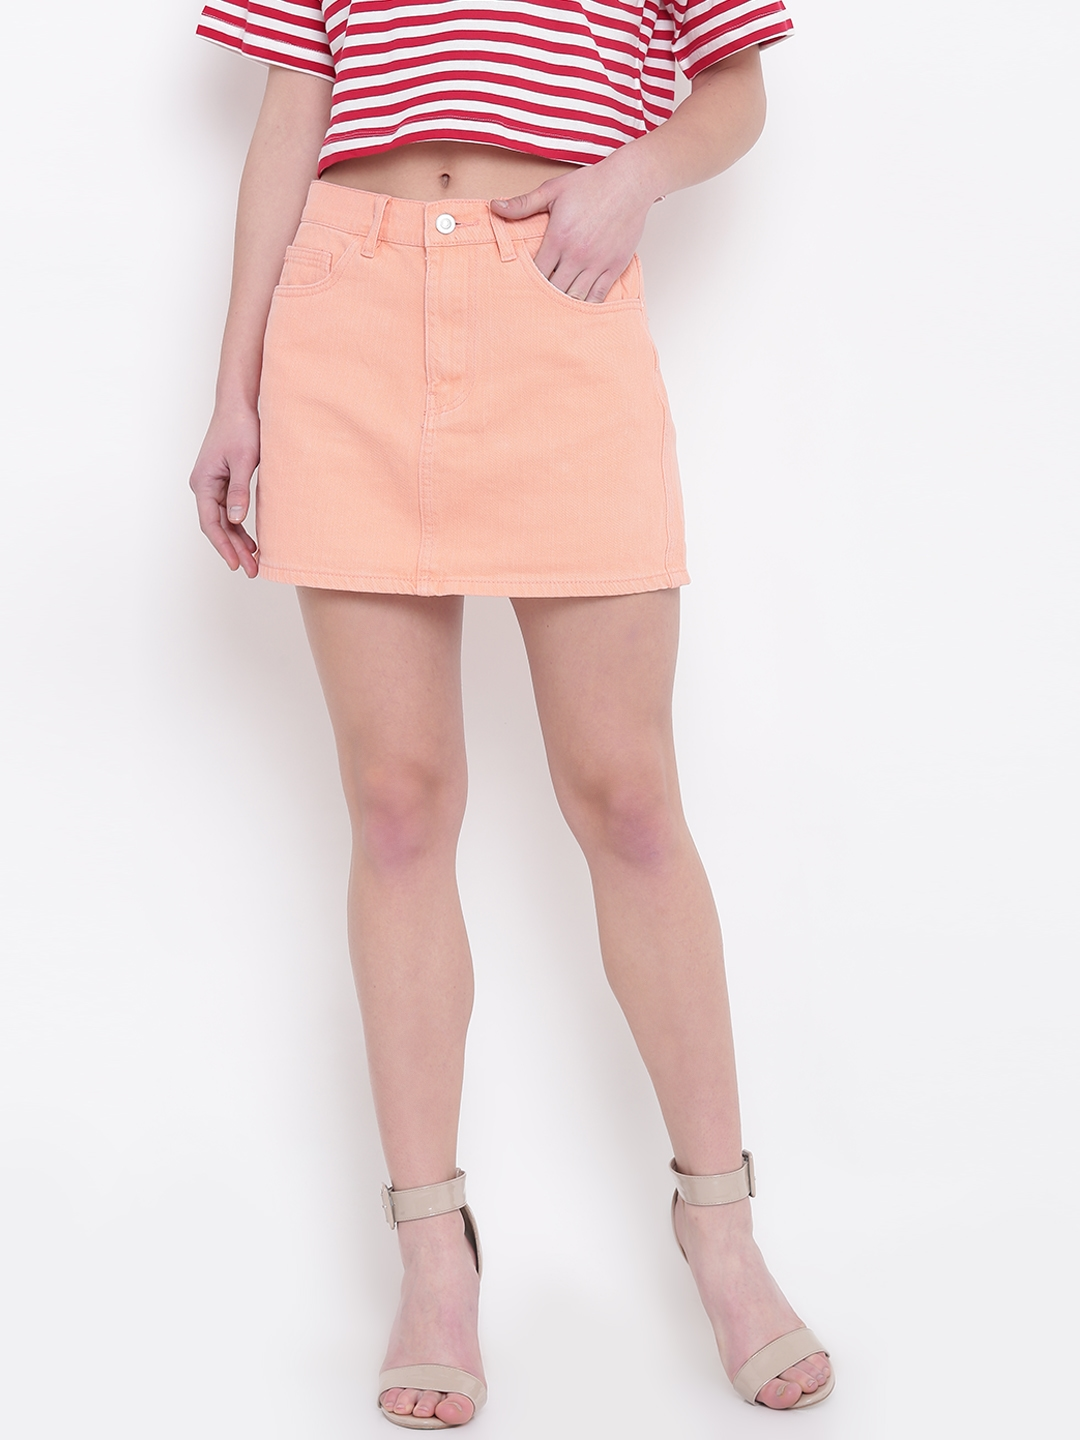 141e5e3e8 Buy FOREVER 21 Peach Coloured Denim Mini A Line Skirt - Skirts for ...